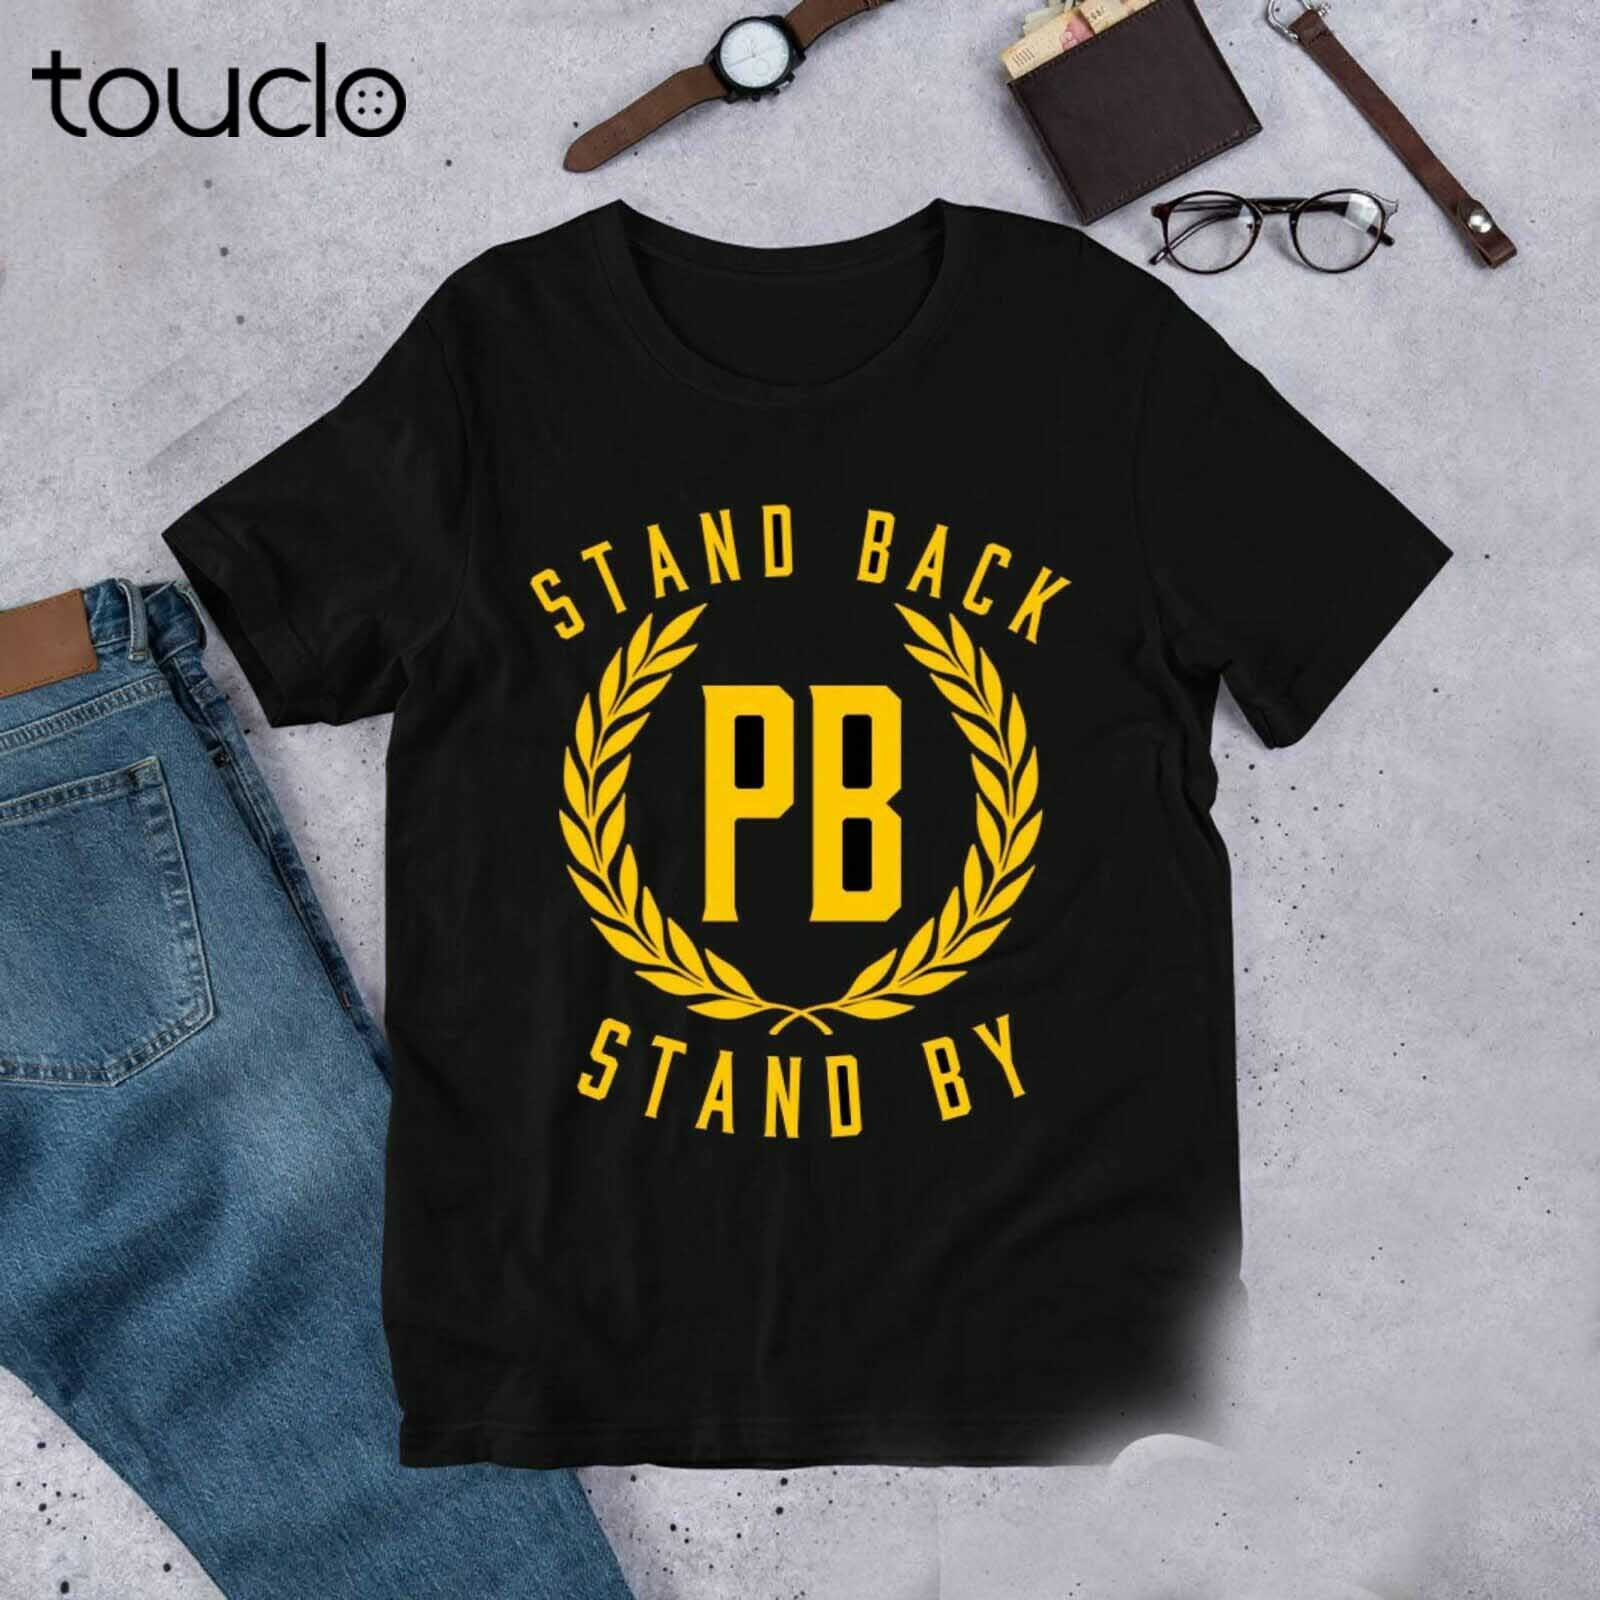 Stand Back and Stand By PB T-shirt, Unisex tee